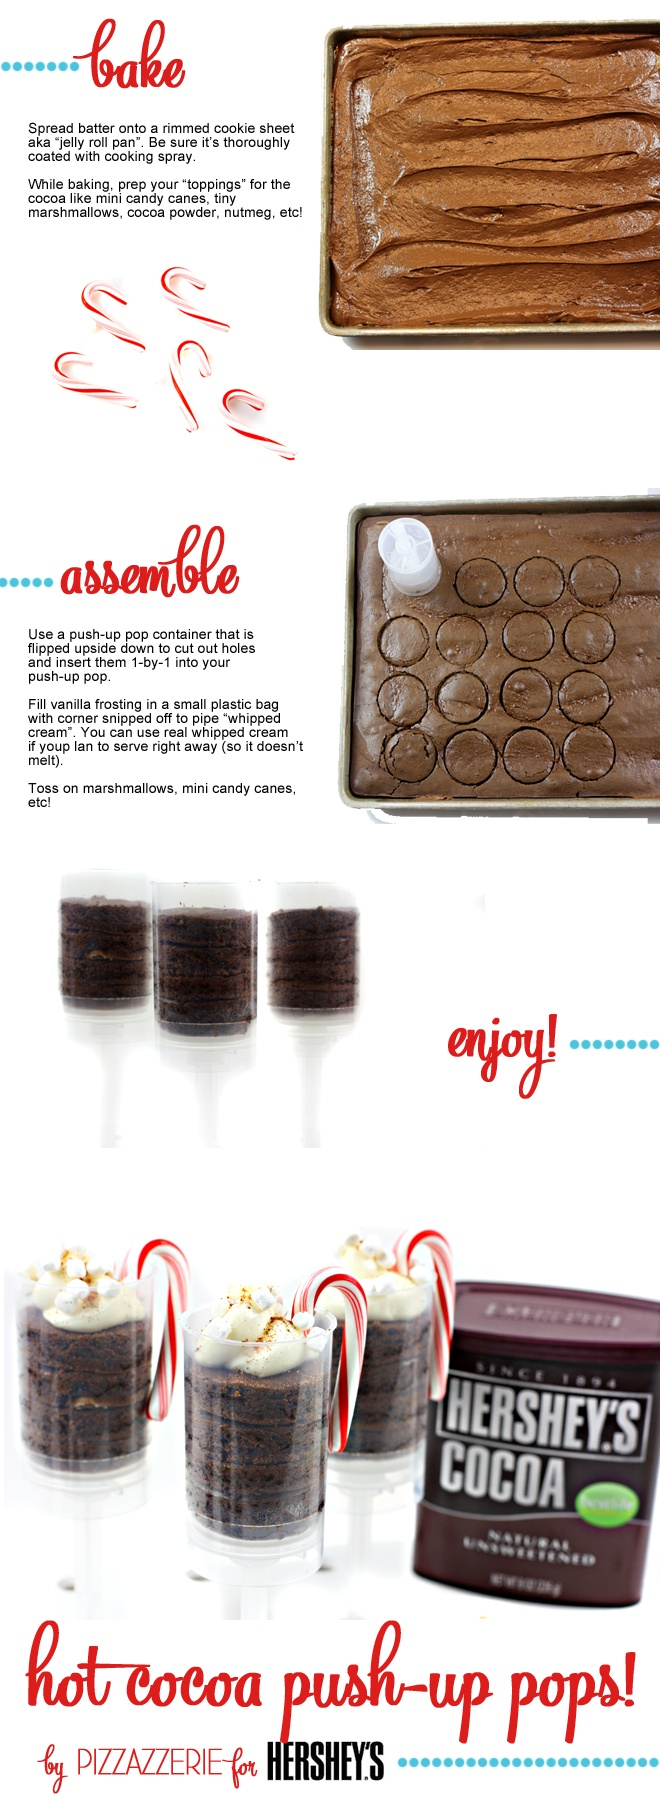 Hershey Hot Cocoa Push-Up Pops by Pizzazzerie.com